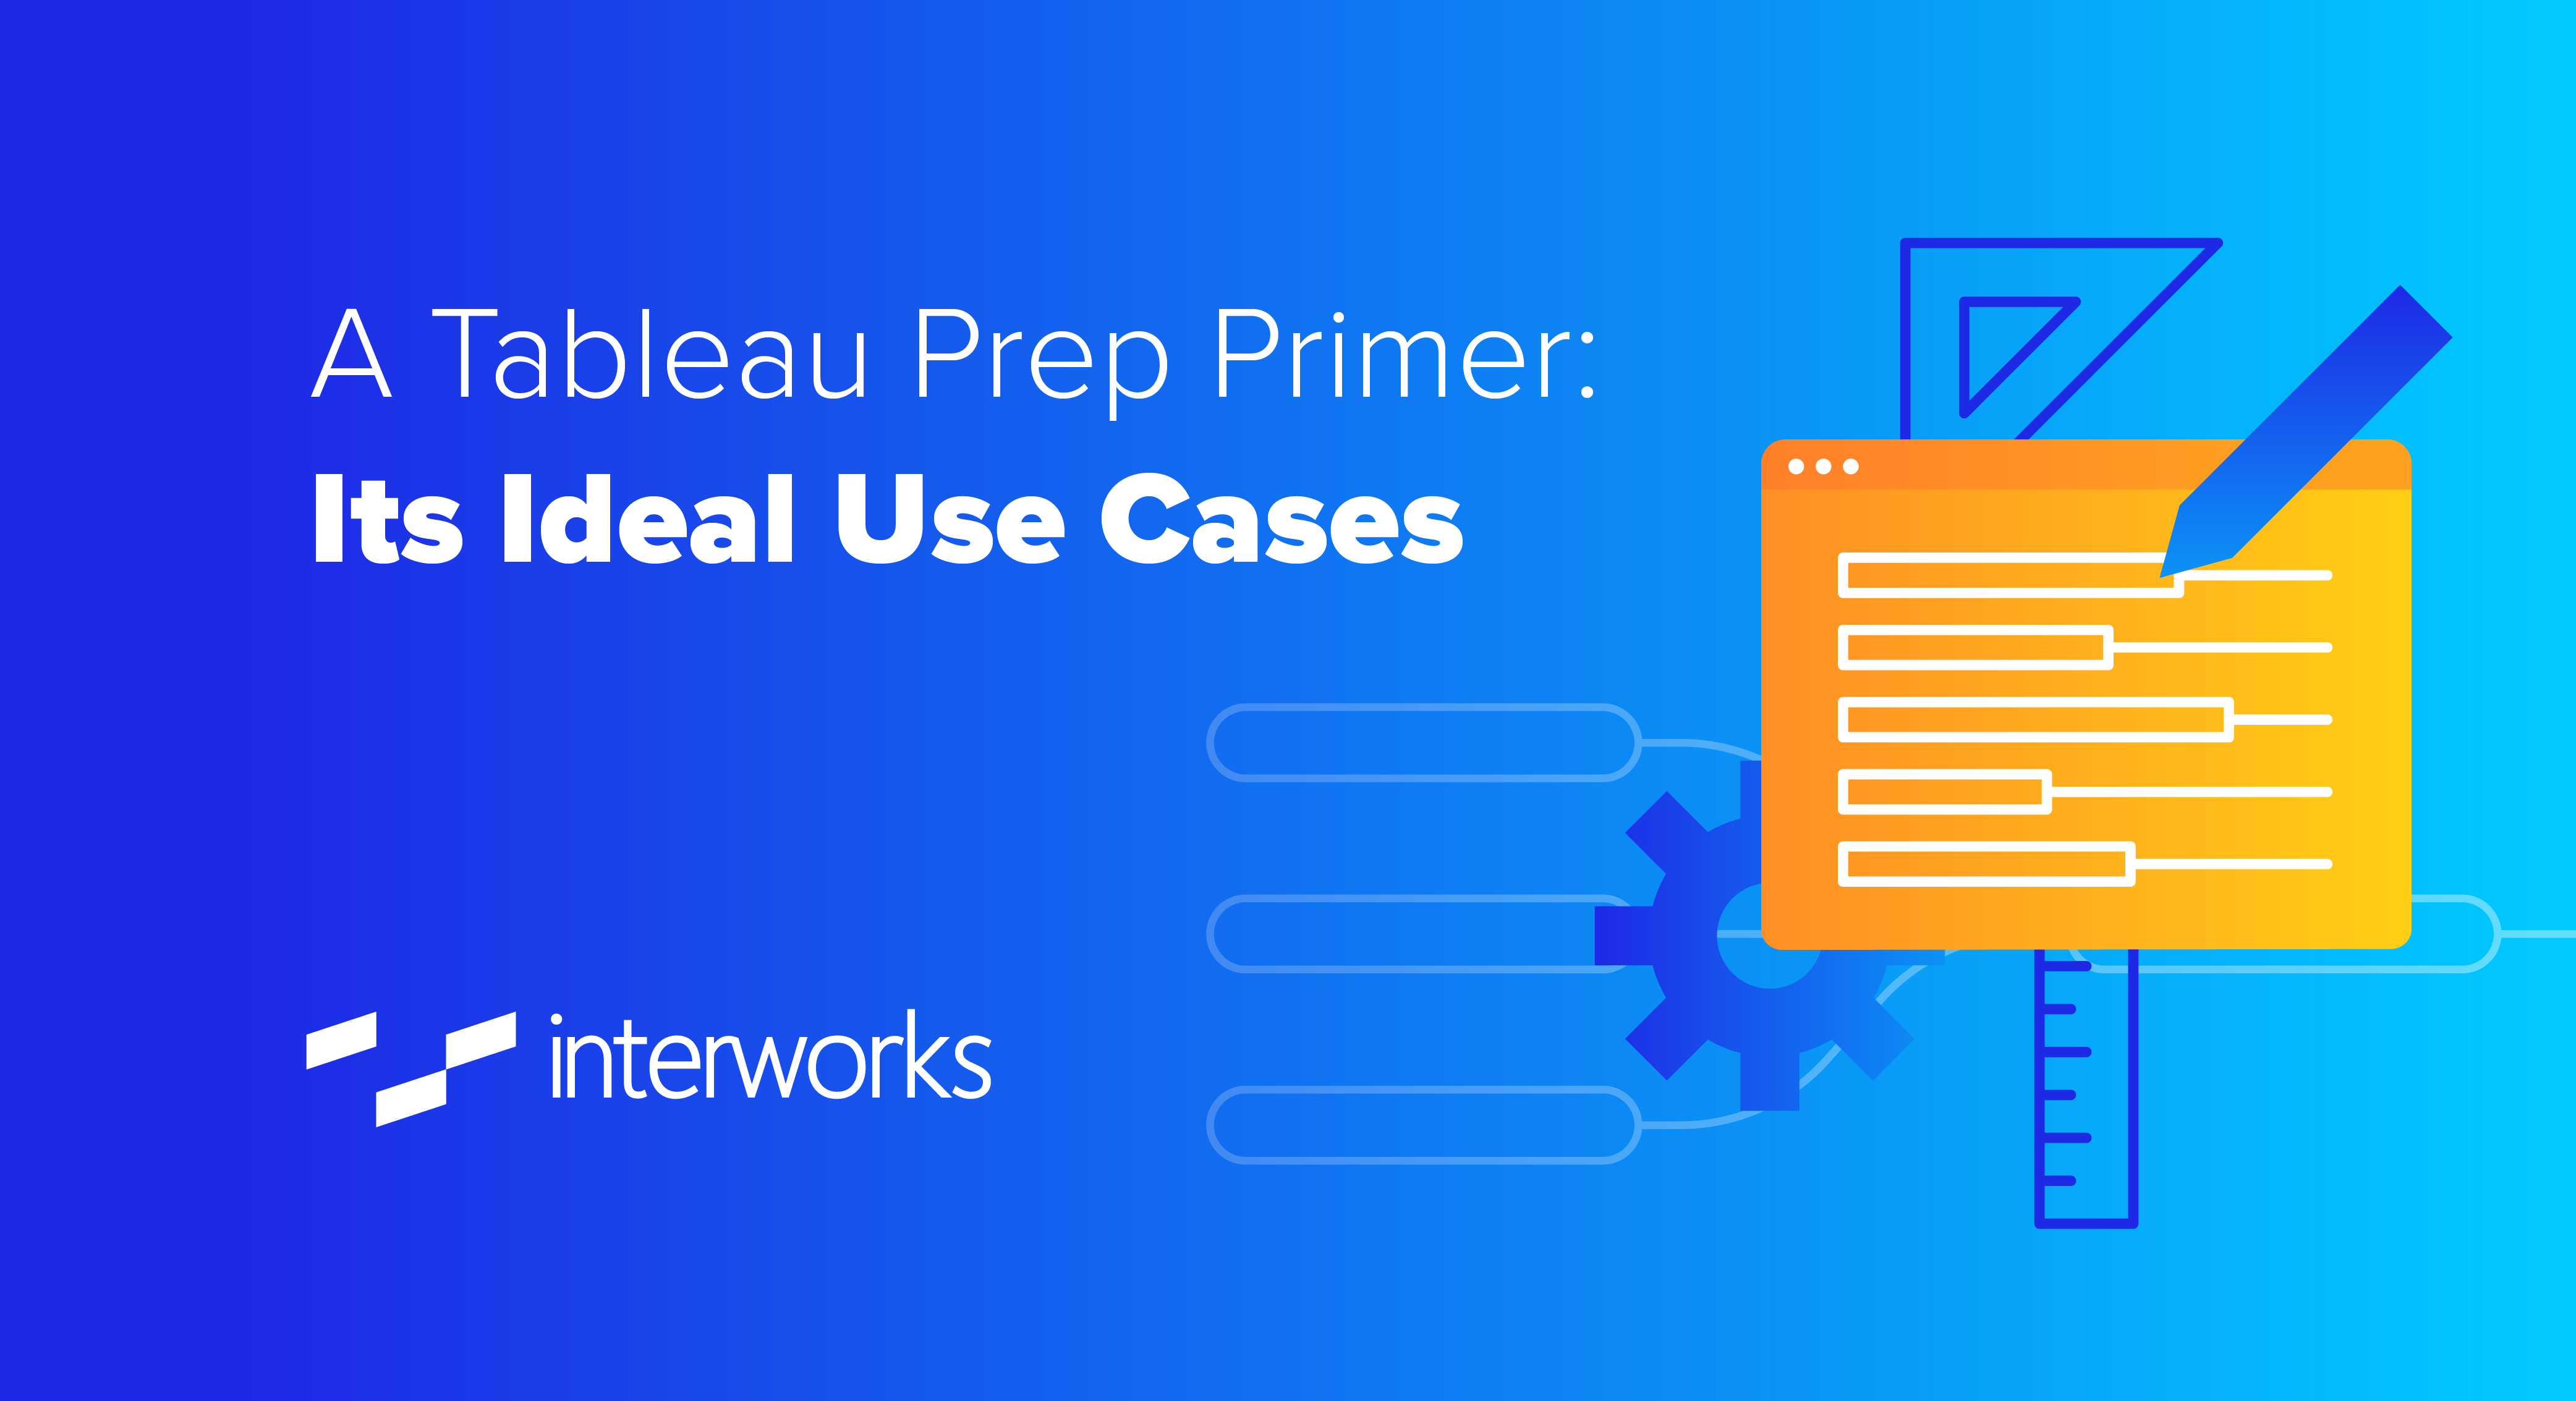 A Tableau Prep Primer: Its Ideal Use Cases